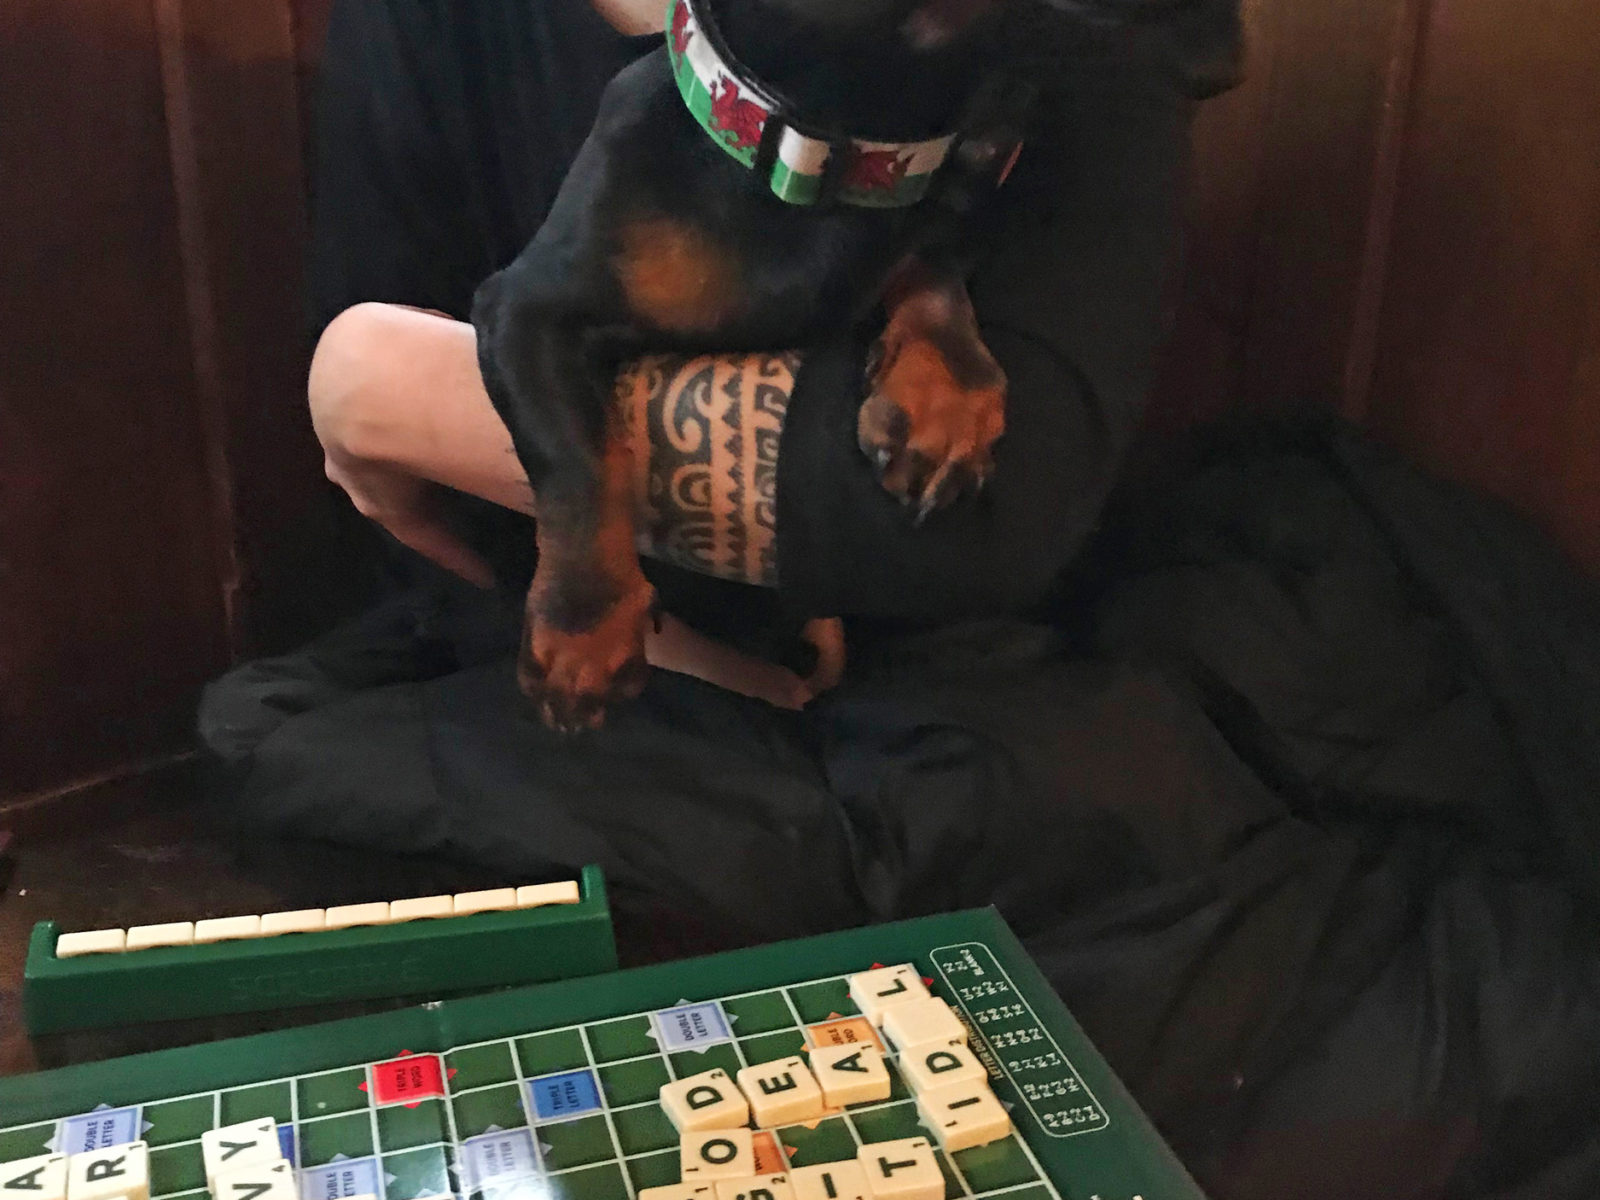 We love pub dogs and board games